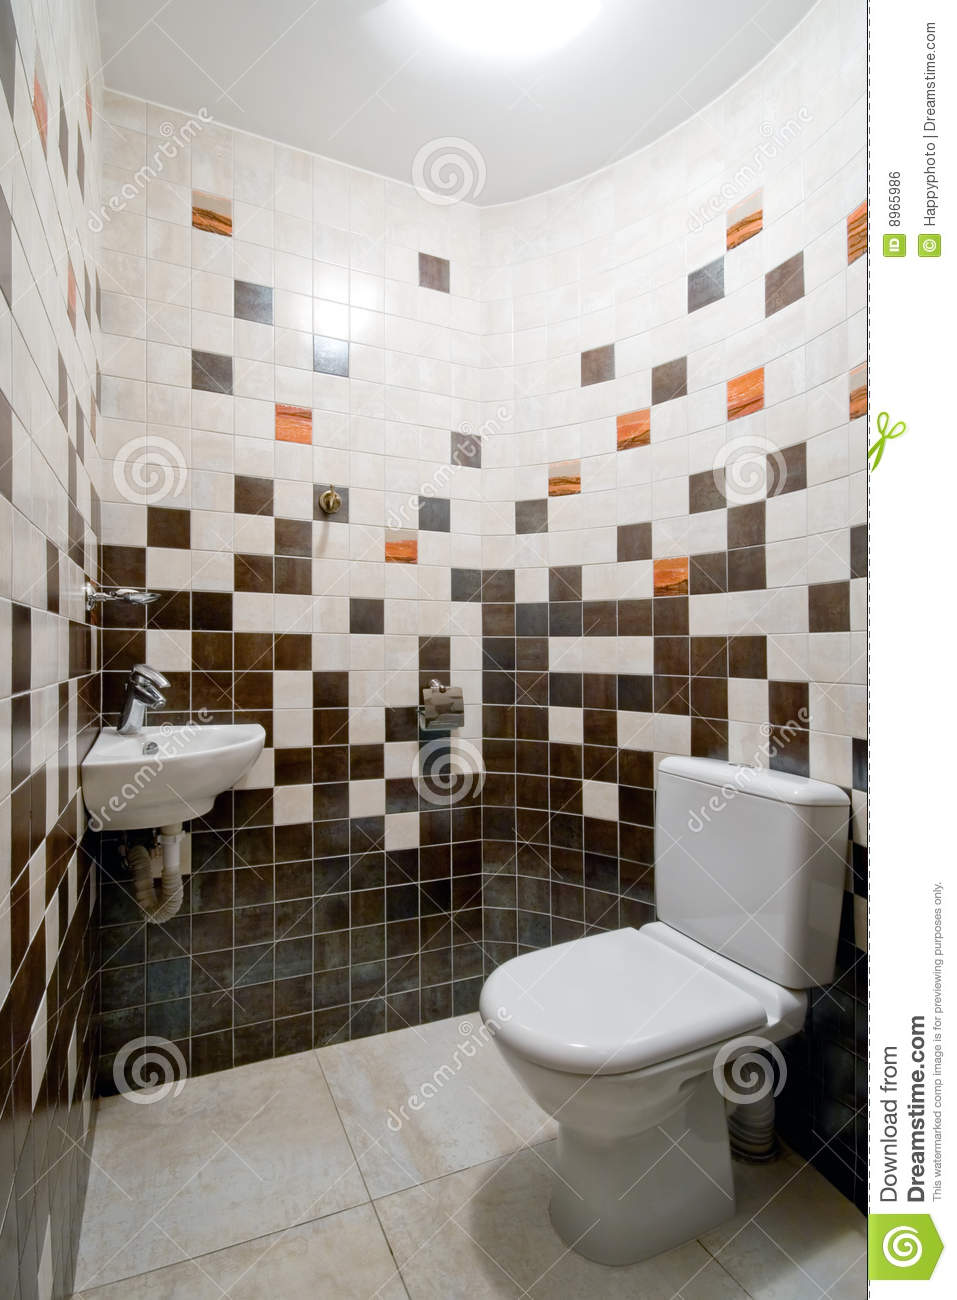 Toilet Room Designs: Simple Toilet Room Stock Photo. Image Of Decor, Tiled